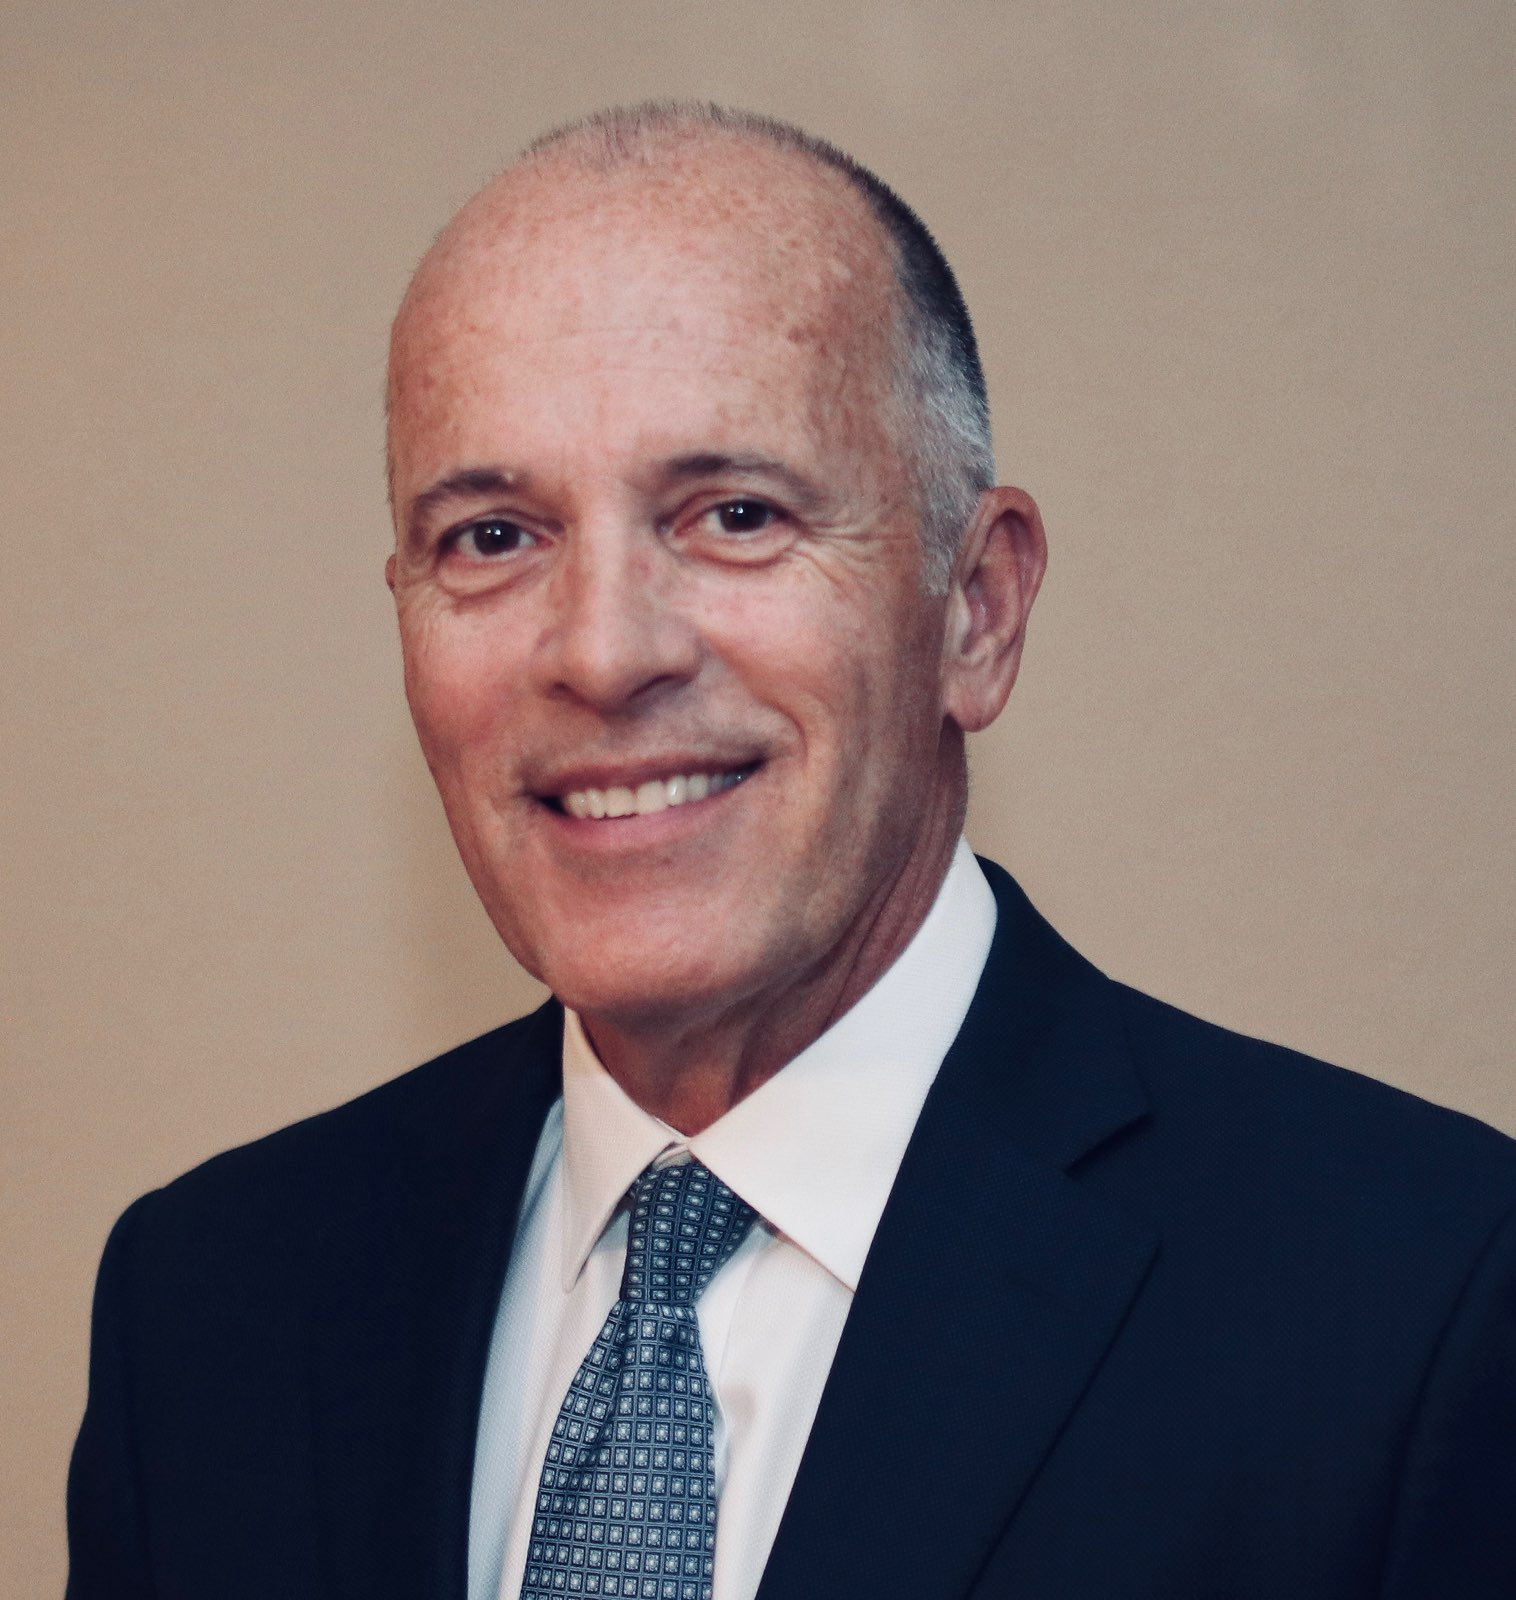 LIPSCOMB INSURANCE GROUP WELCOMES TOM GIBSON AS VICE PRESIDENT, PERSONAL LINES